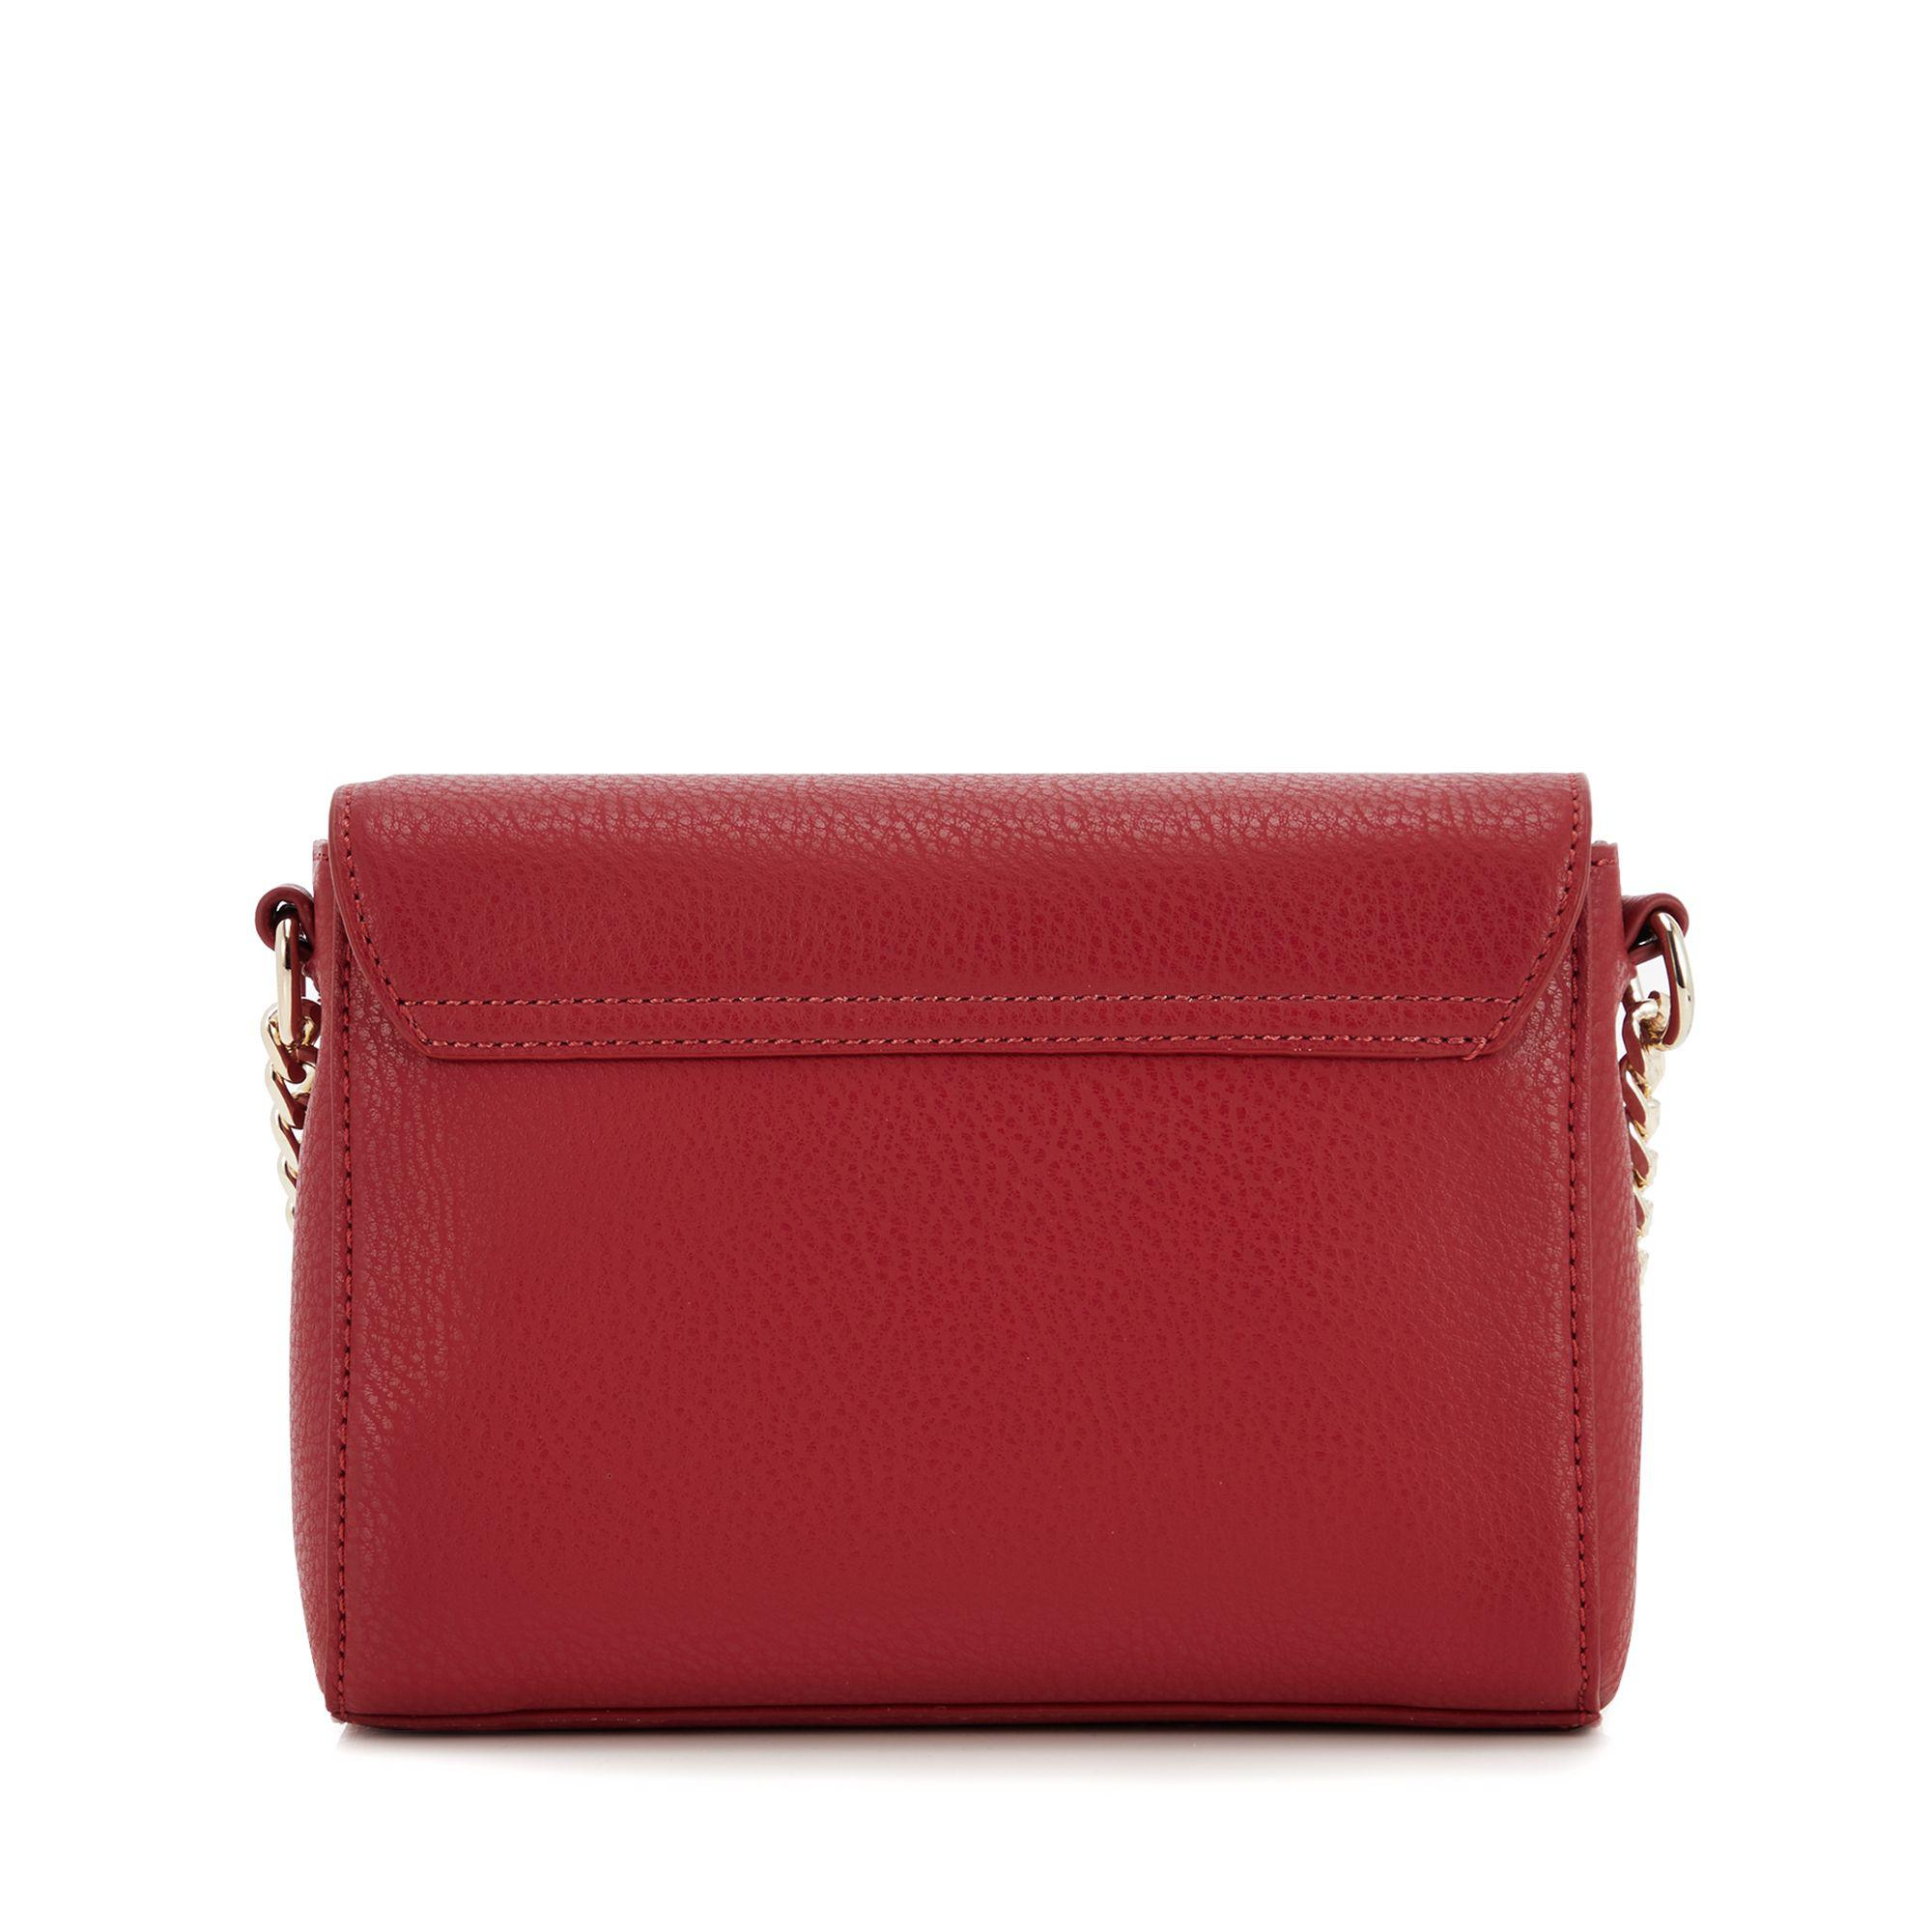 Versace Jeans Red Mini Cross Body Bag in Red - Lyst 6ce50d6ca0d8a